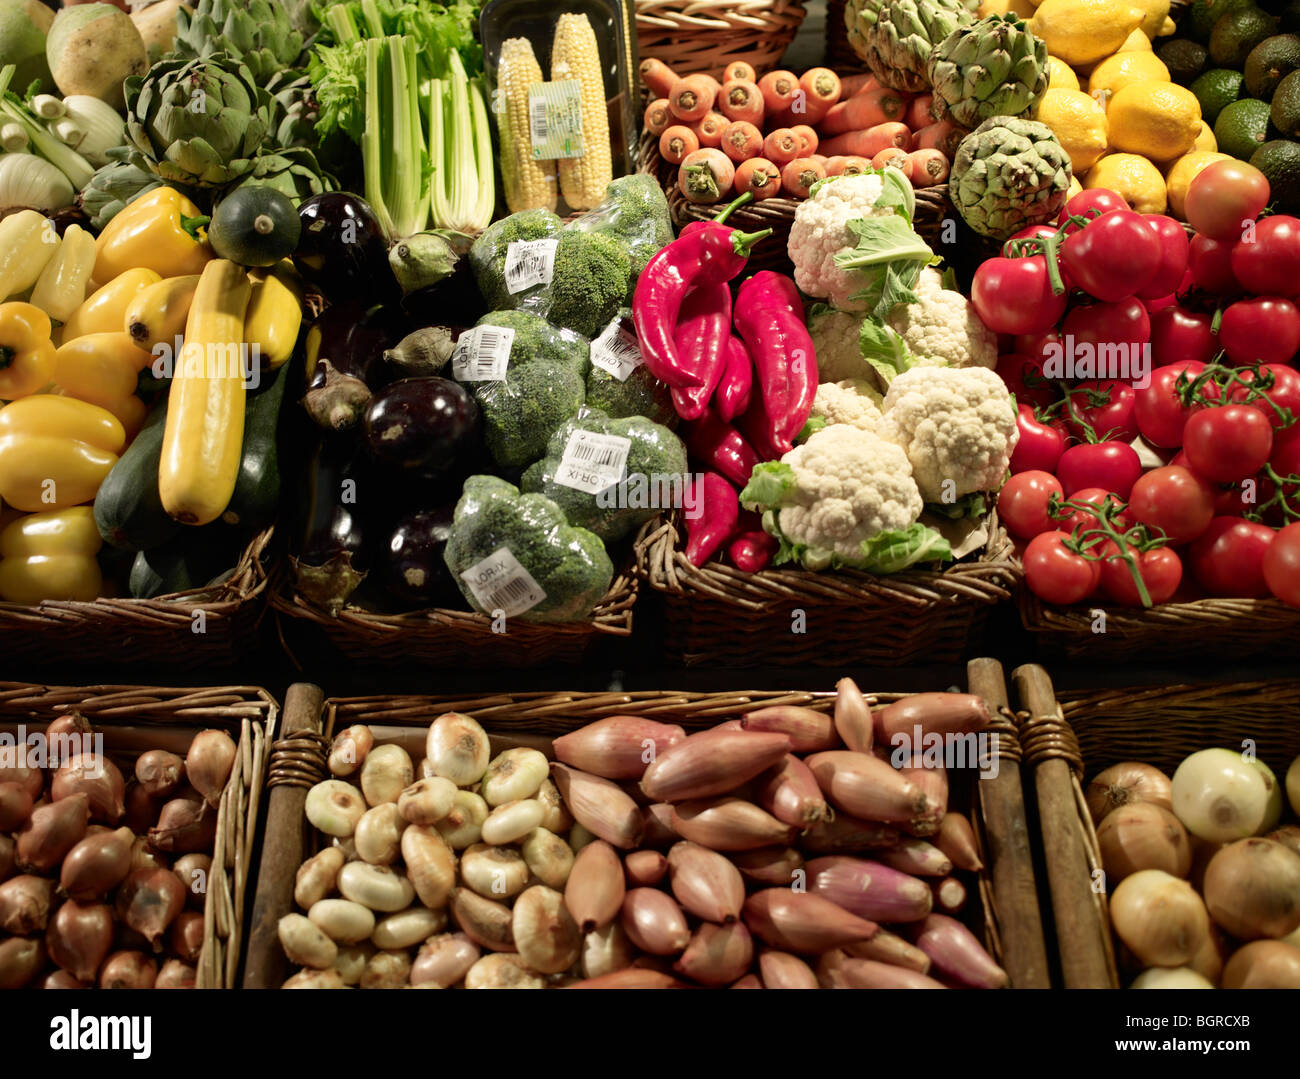 Greengrocery. - Stock Image